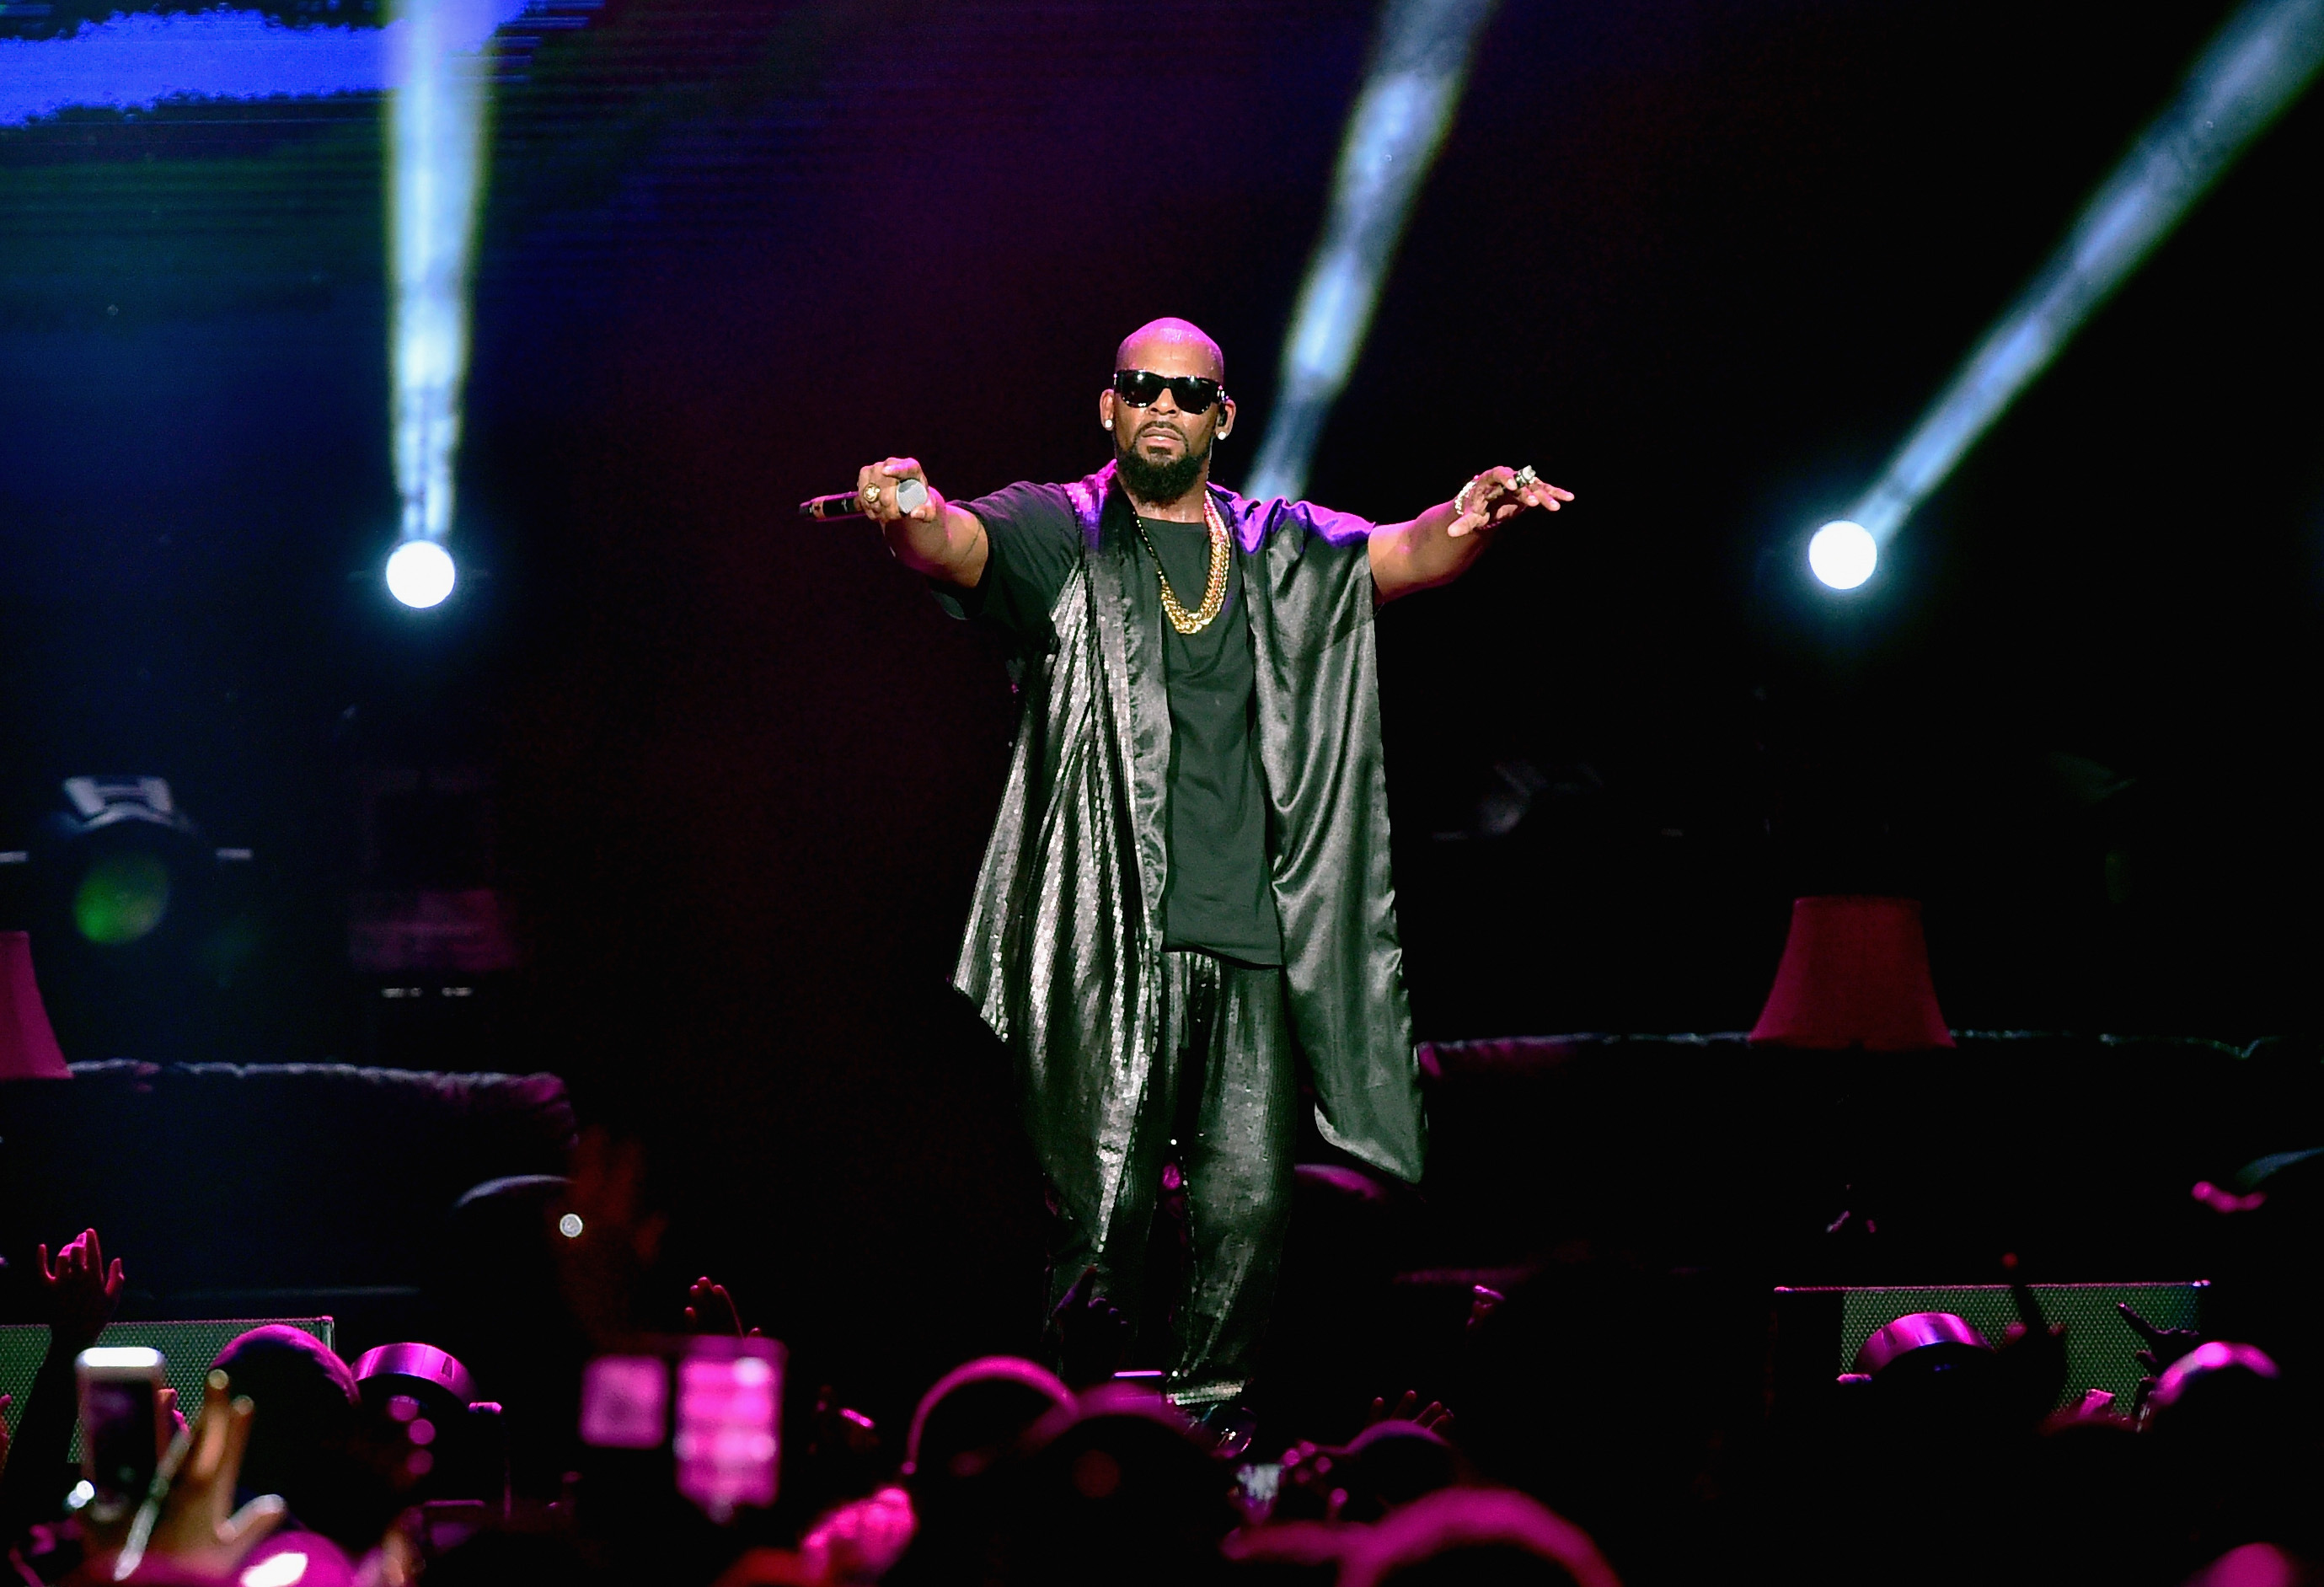 Recording artist R. Kelly perfoms onstage during the Soul Train Weekend Concert 2015 at the Mandalay Bay Events Center on November 7, 2015 in Las Vegas, Nevada.